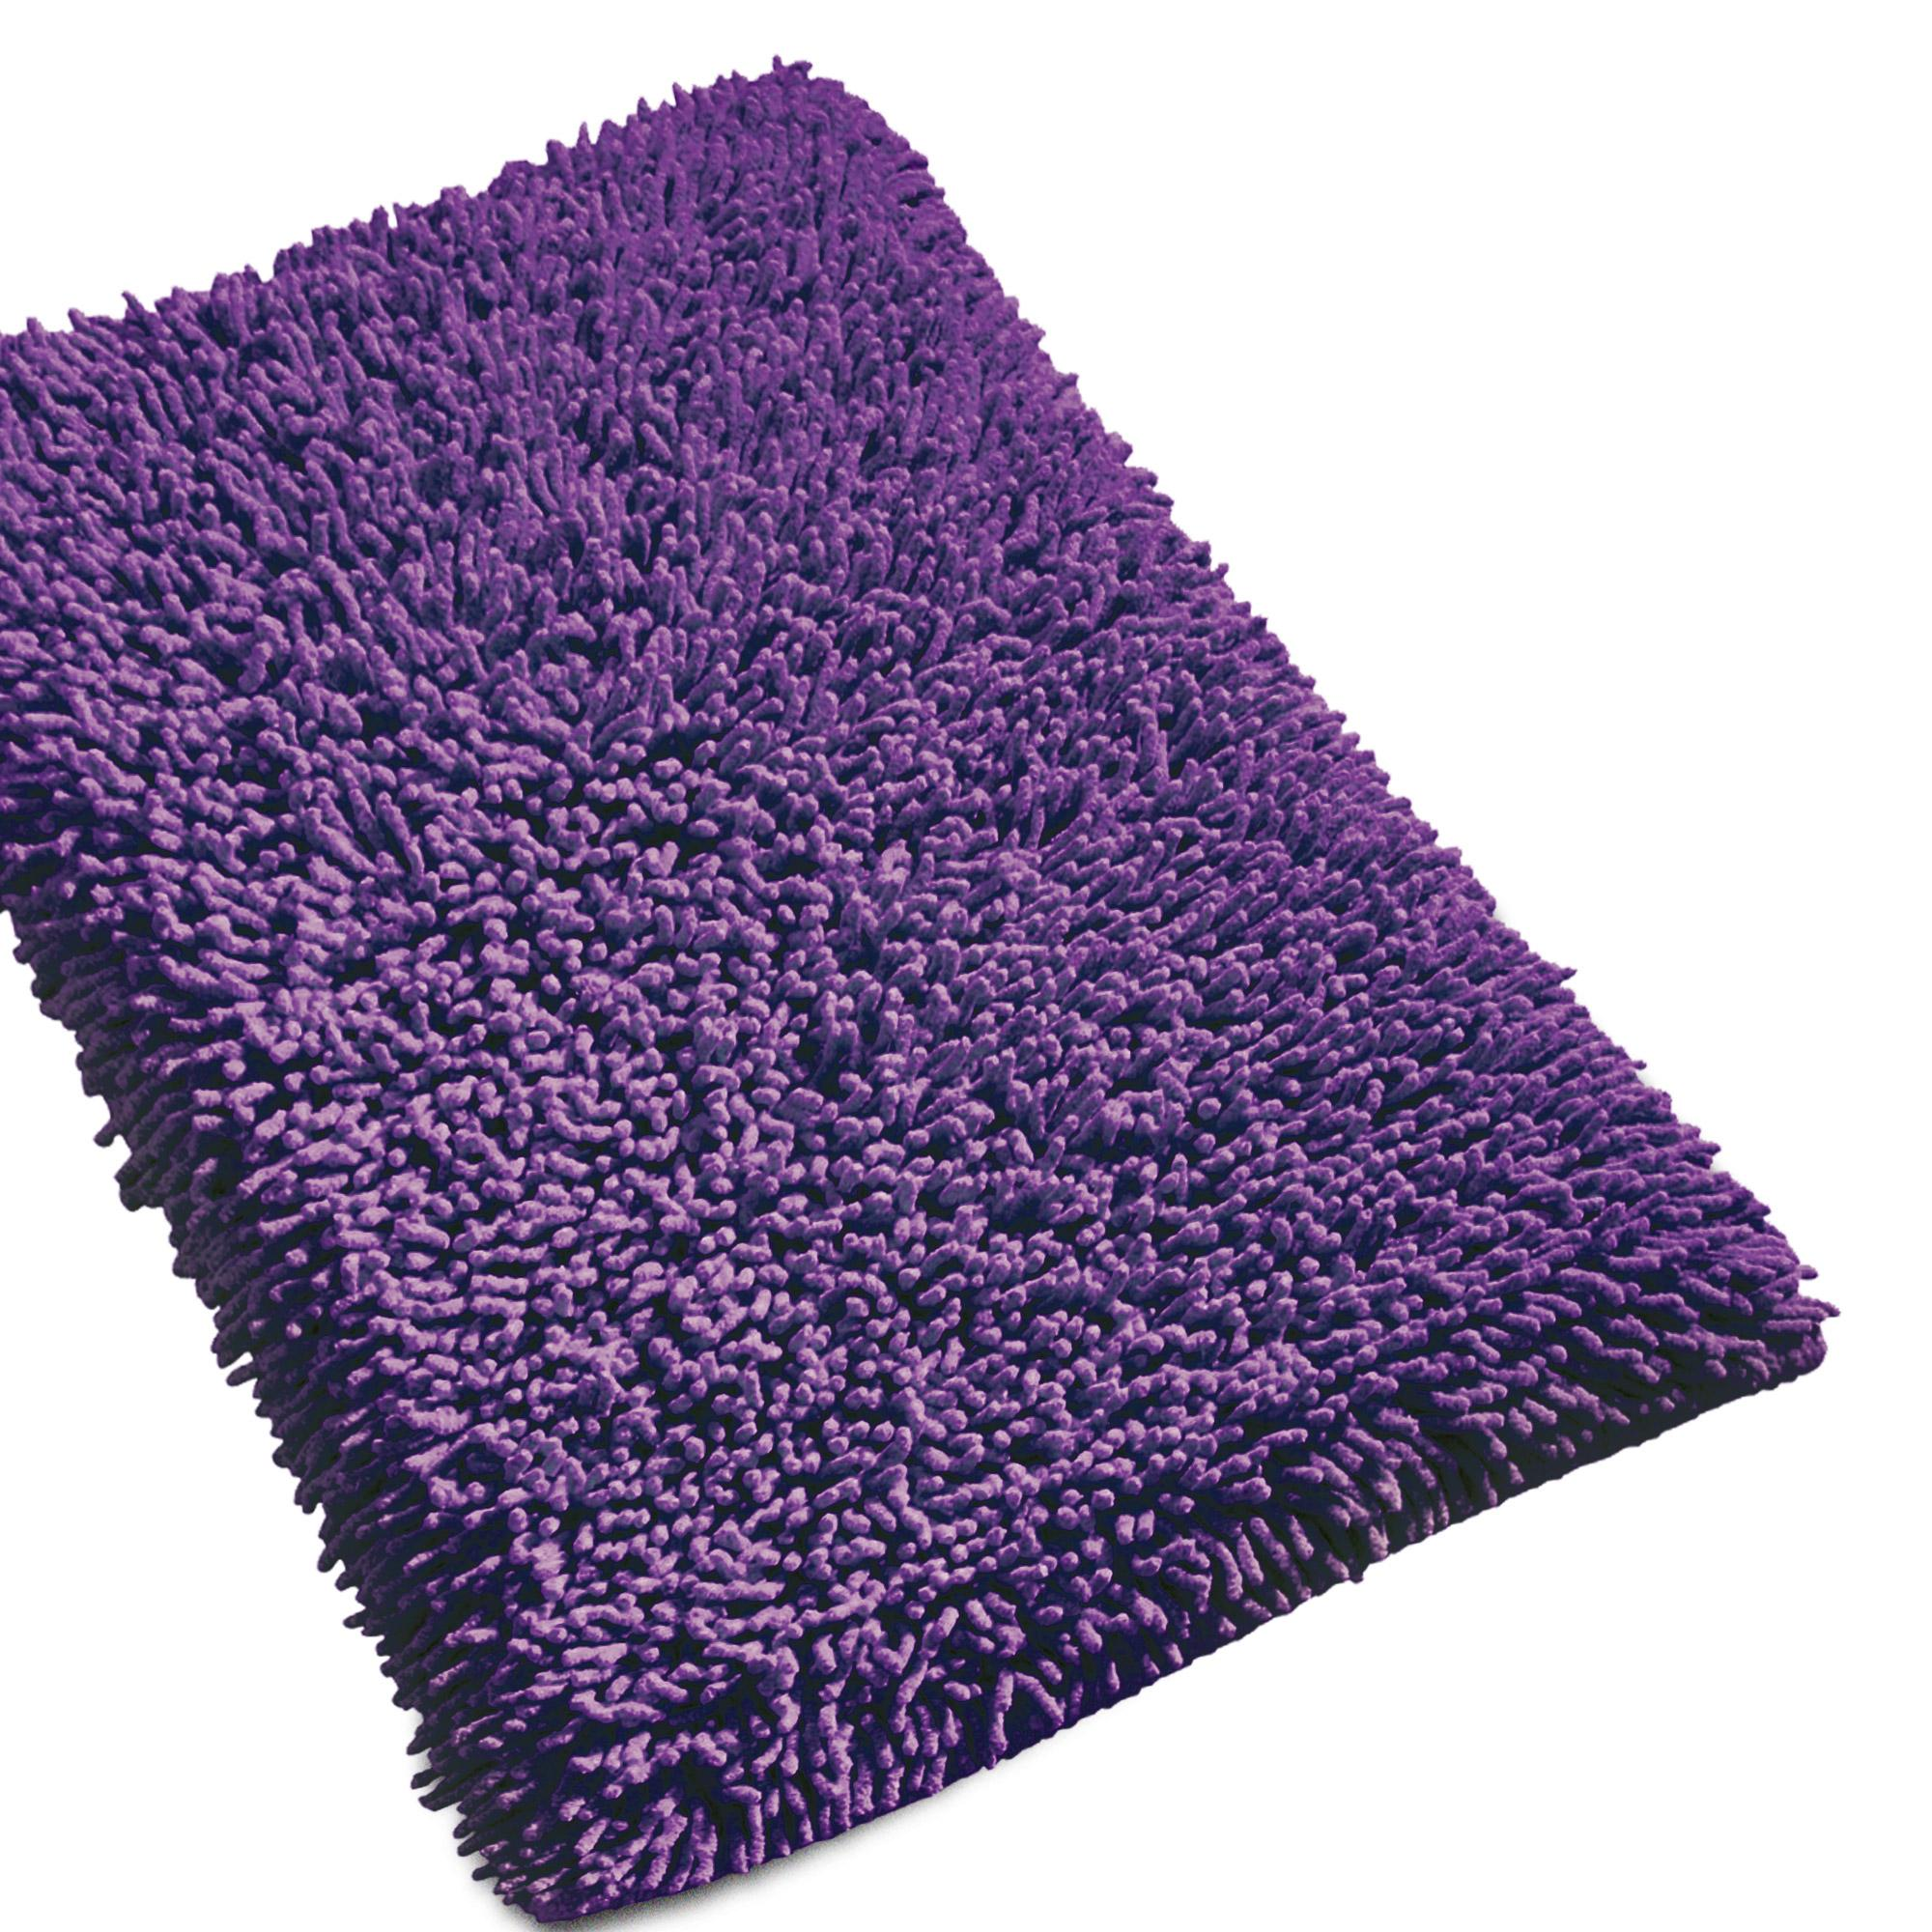 tapis de bain 50x80cm uni coton chenille violet linnea vente de linge de maison. Black Bedroom Furniture Sets. Home Design Ideas